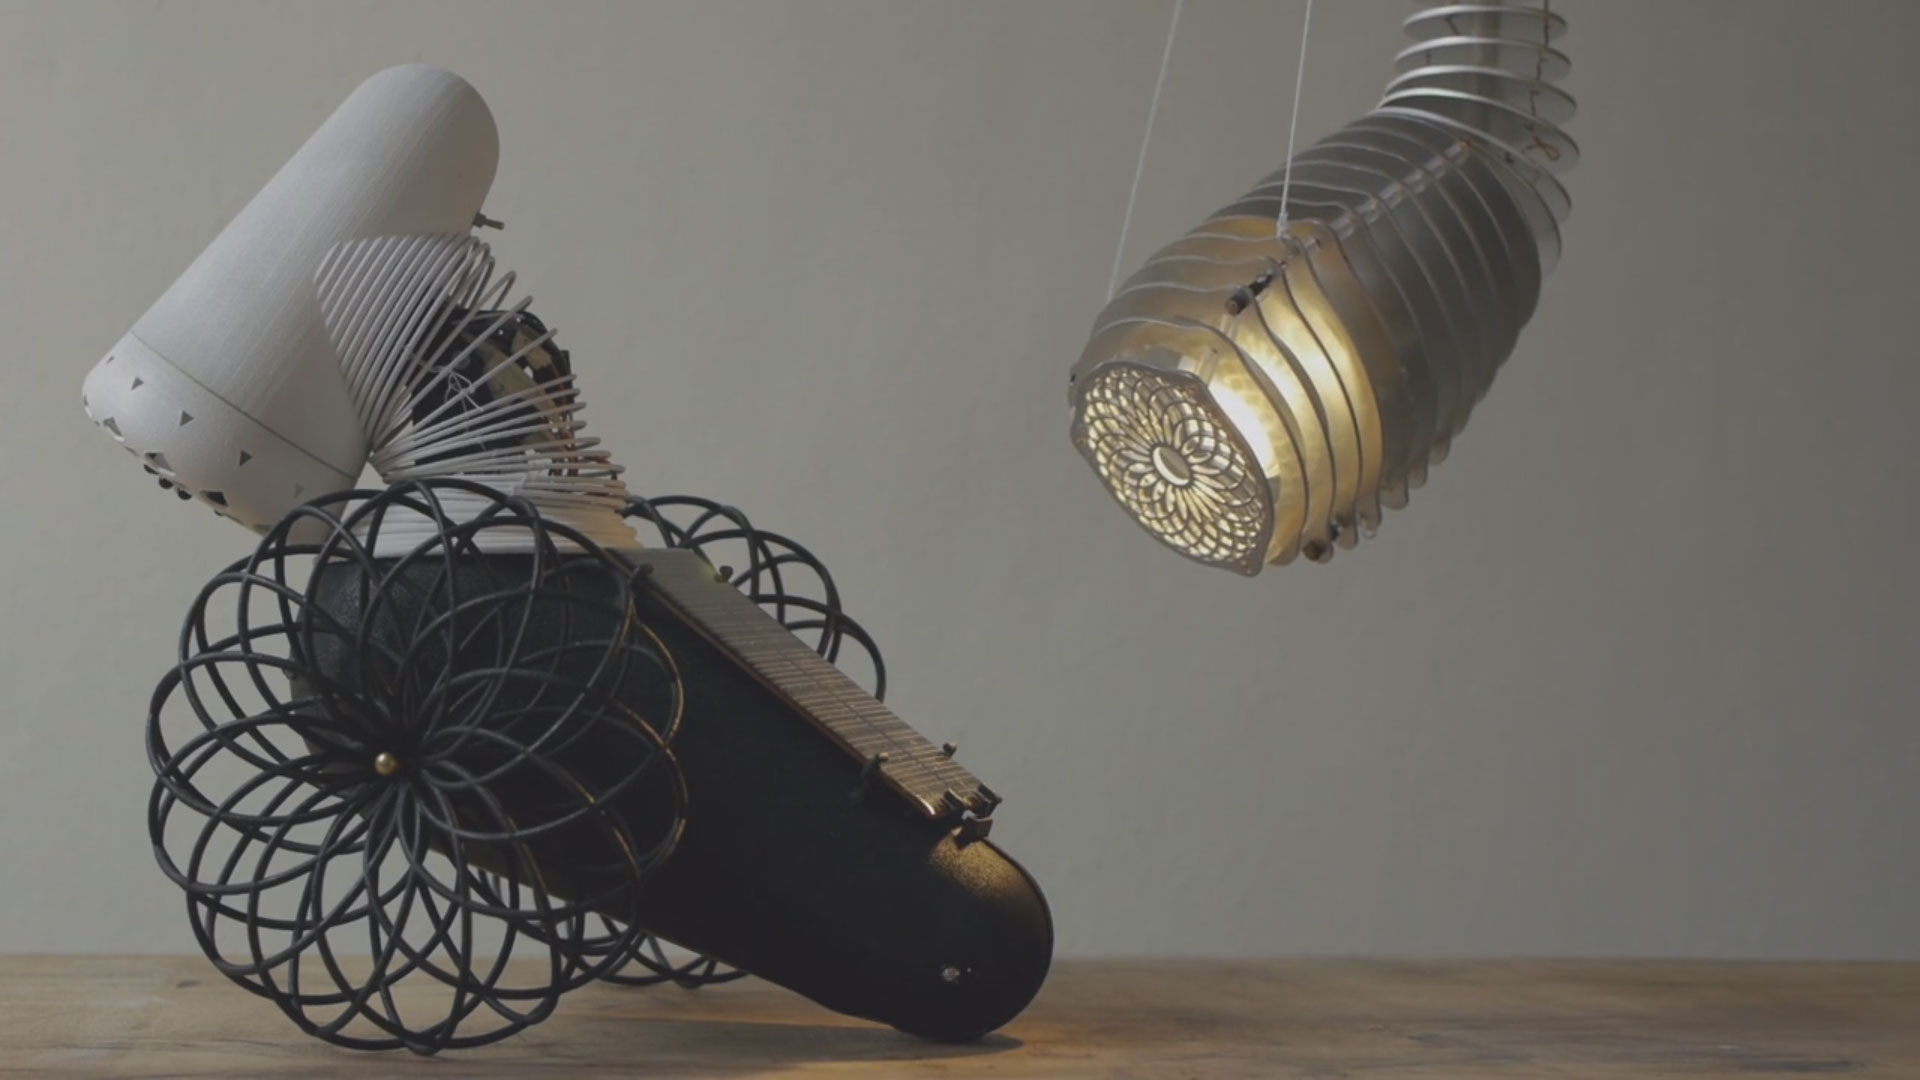 Species of Illumination – Lamps That Behave like Animals